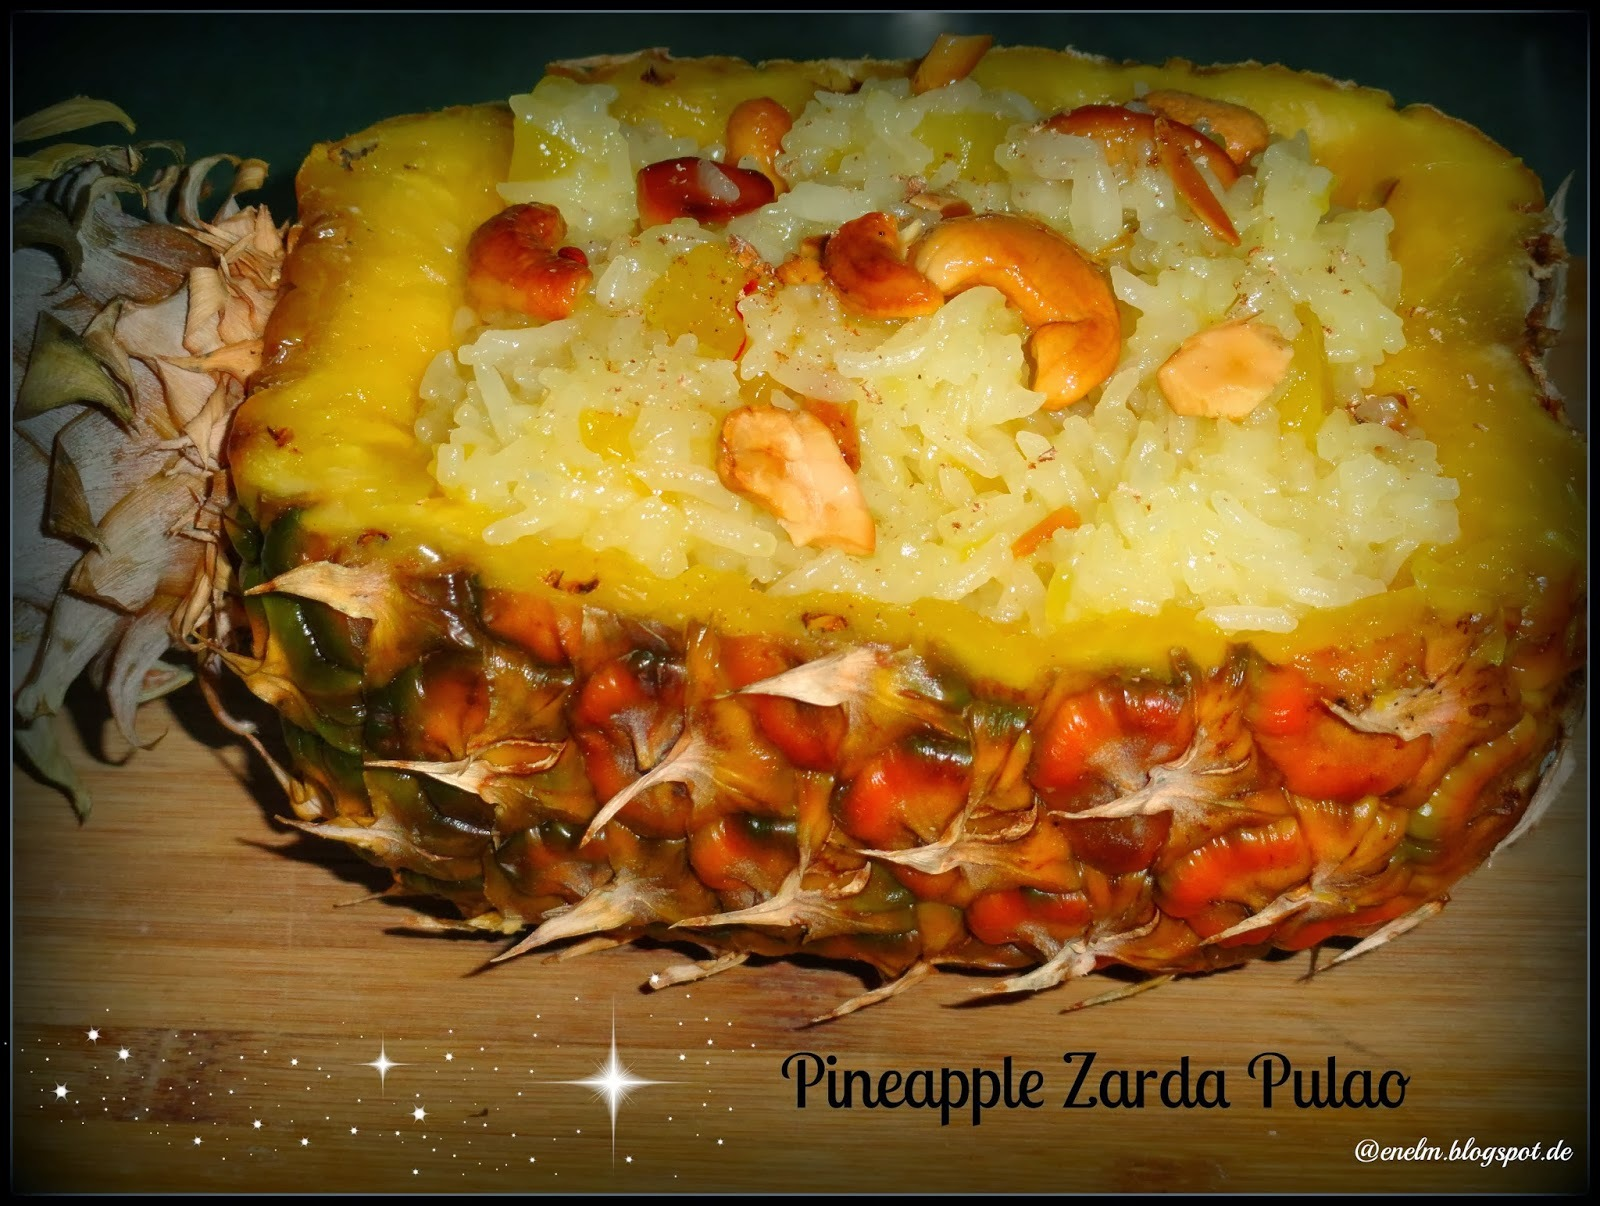 Pineapple Zarda Pulao